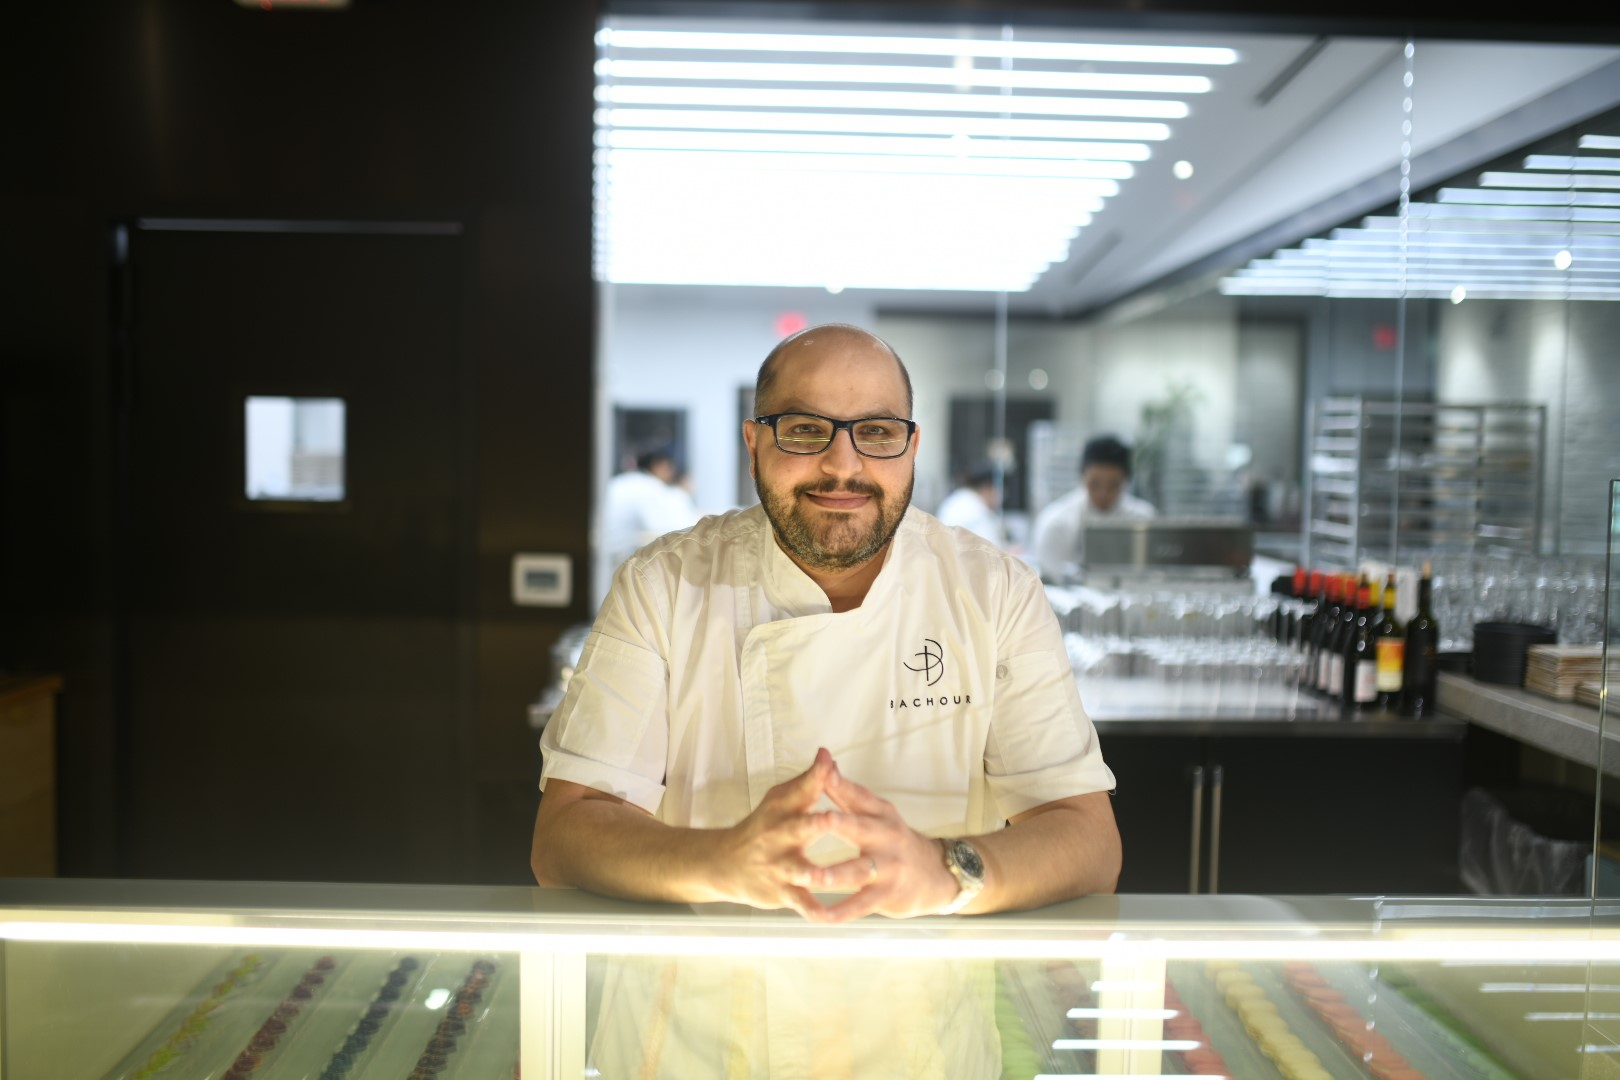 Bachour Opens at 2020 Salzedo in Downtown Coral Gables